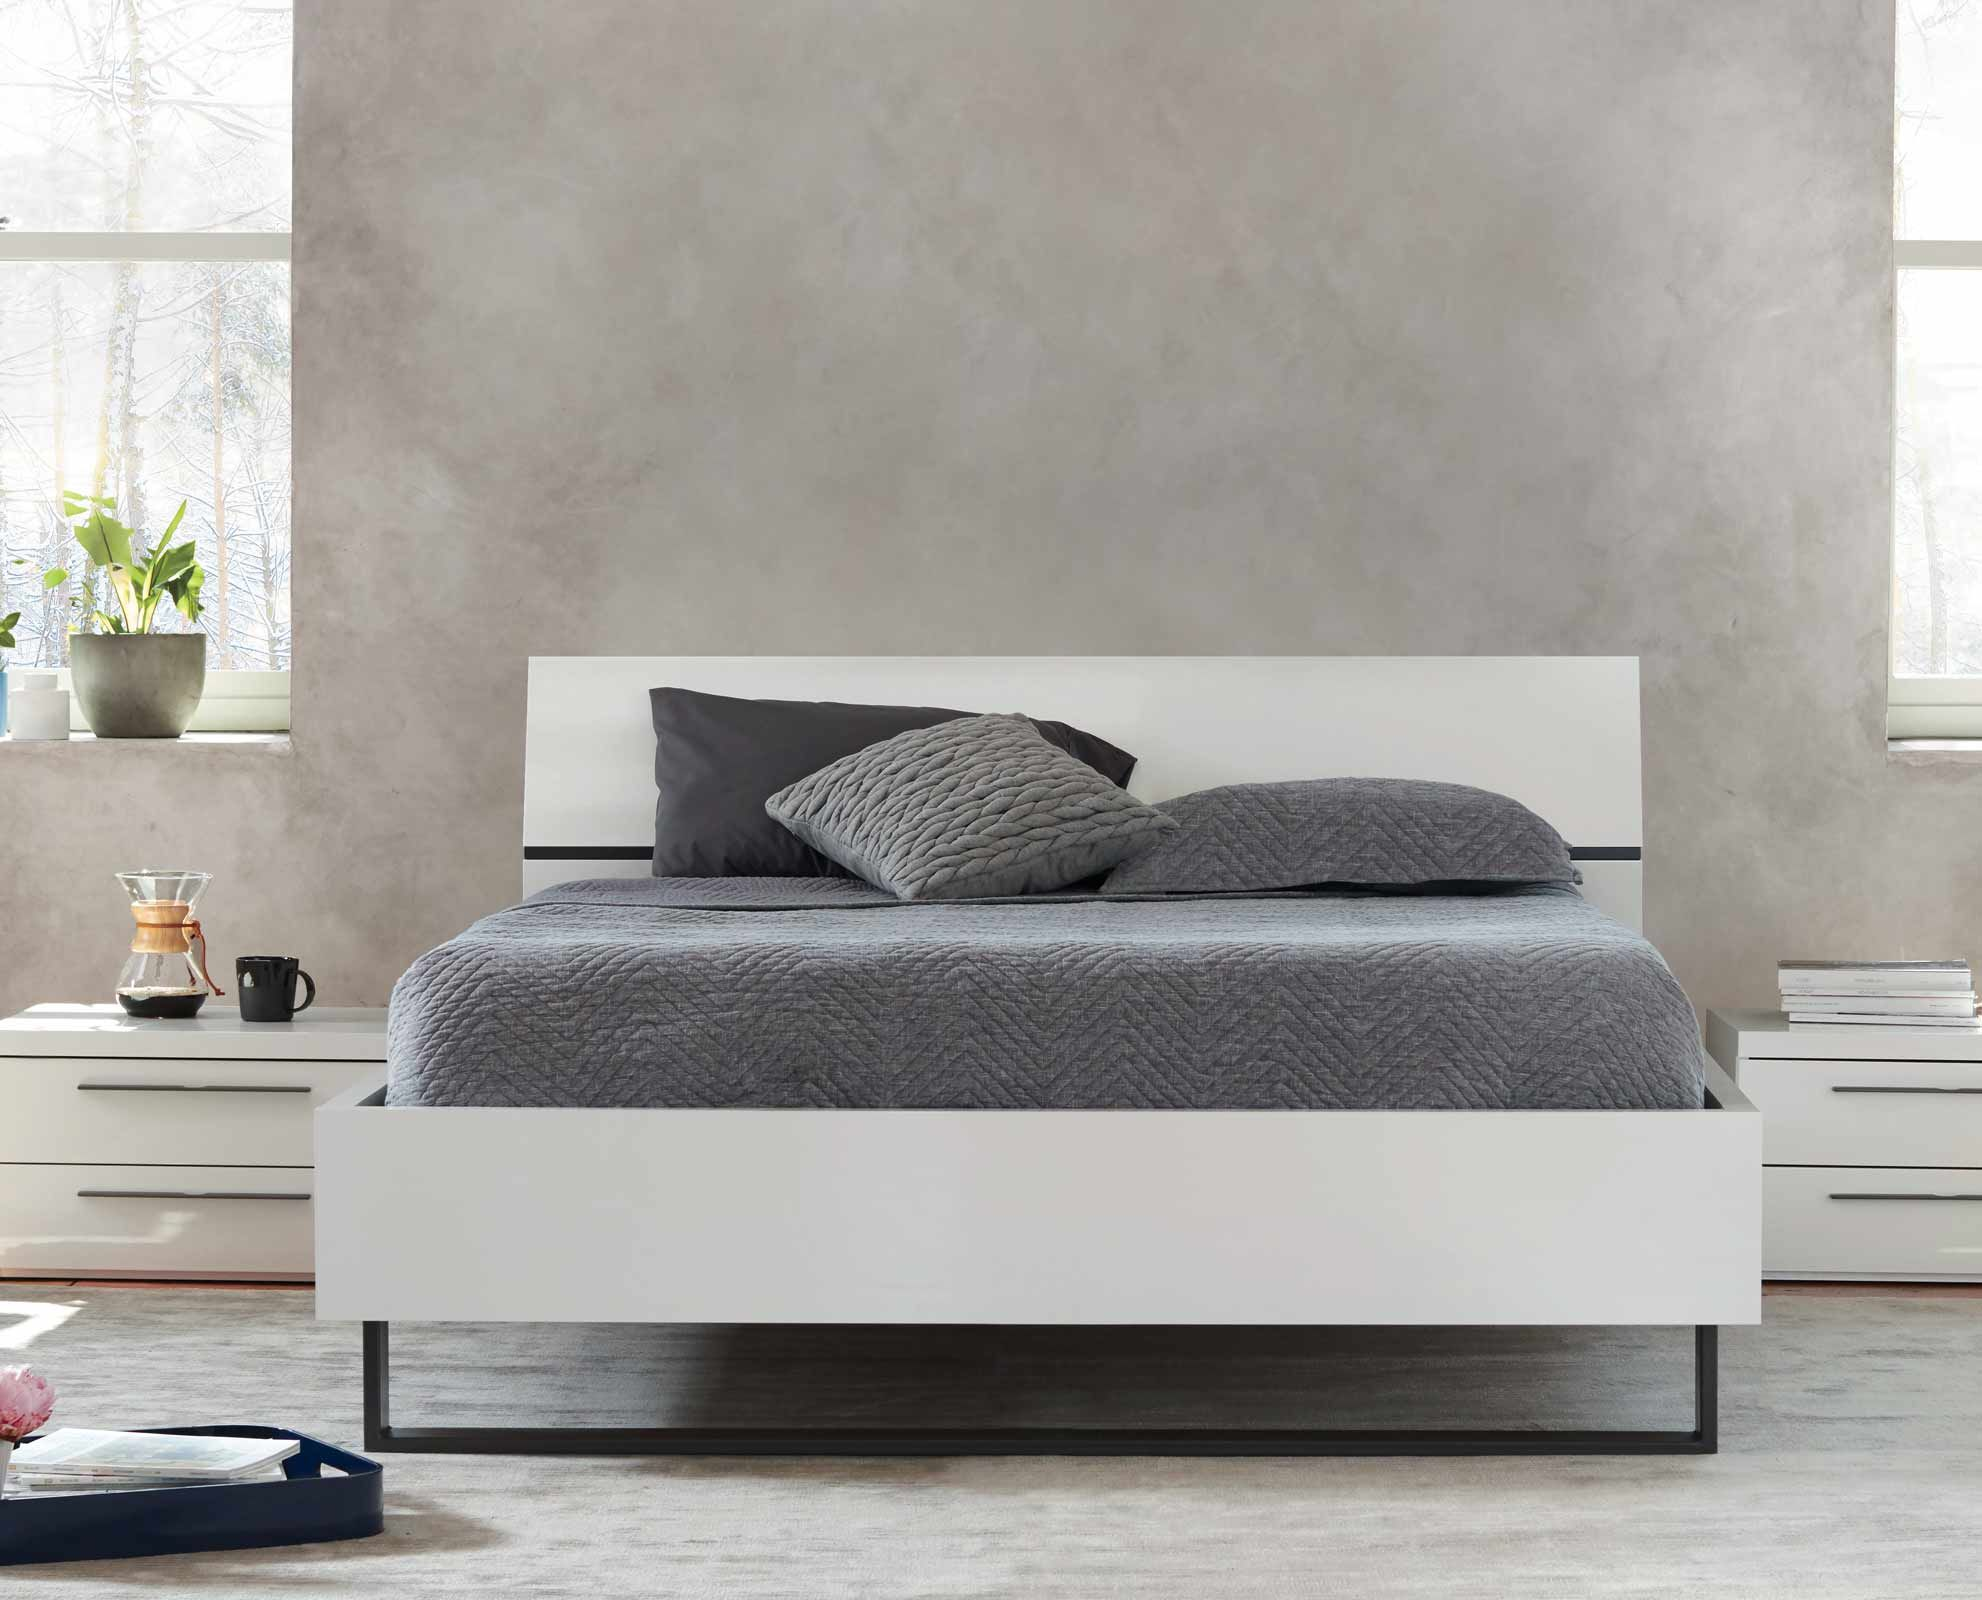 Scandinavian Designs Rest Easy With The Light And Airy Feel Of Tanaan Bed Crafted From Durable Manufactured Wood It Features A Bright White Finish